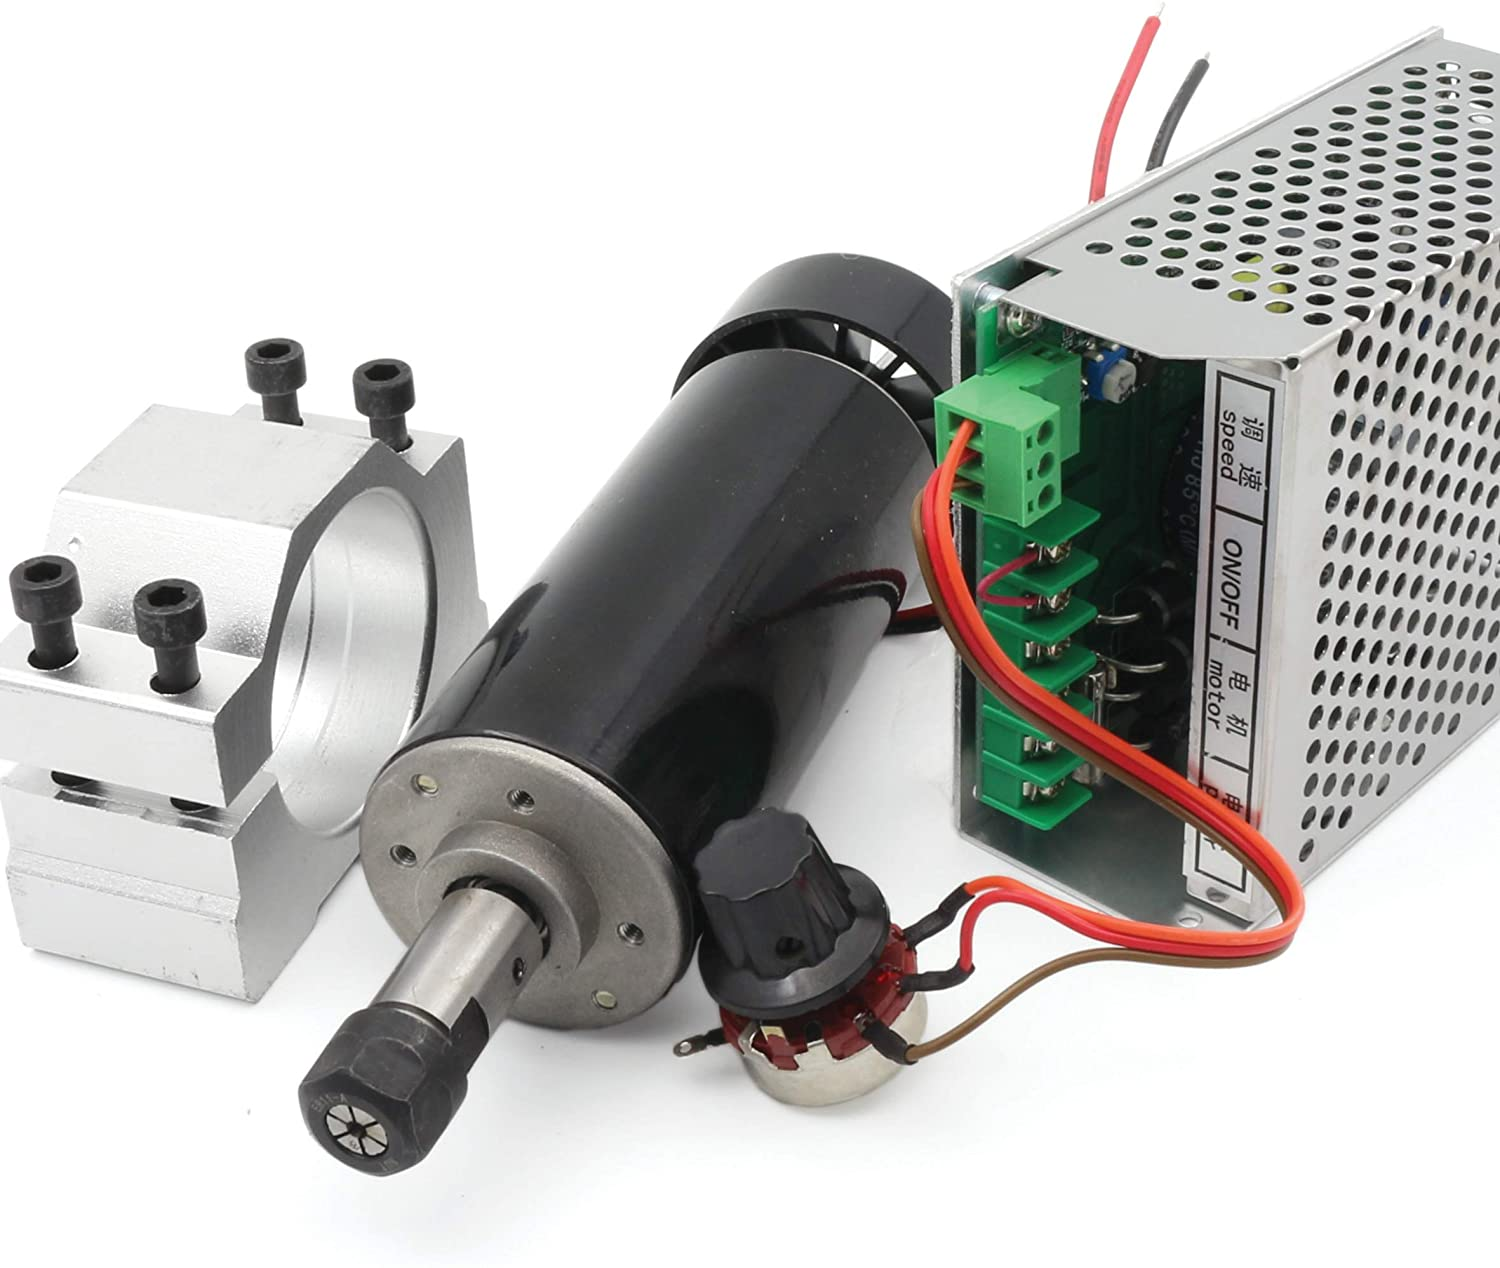 RATTMMOTOR 500W CNC Air Cooled Spindle Motor ER11 12000RMP + Input Voltage AC110V-220V Speed Controller with Power Supply + 52mm Clamp for CNC Rounter Milling Machine